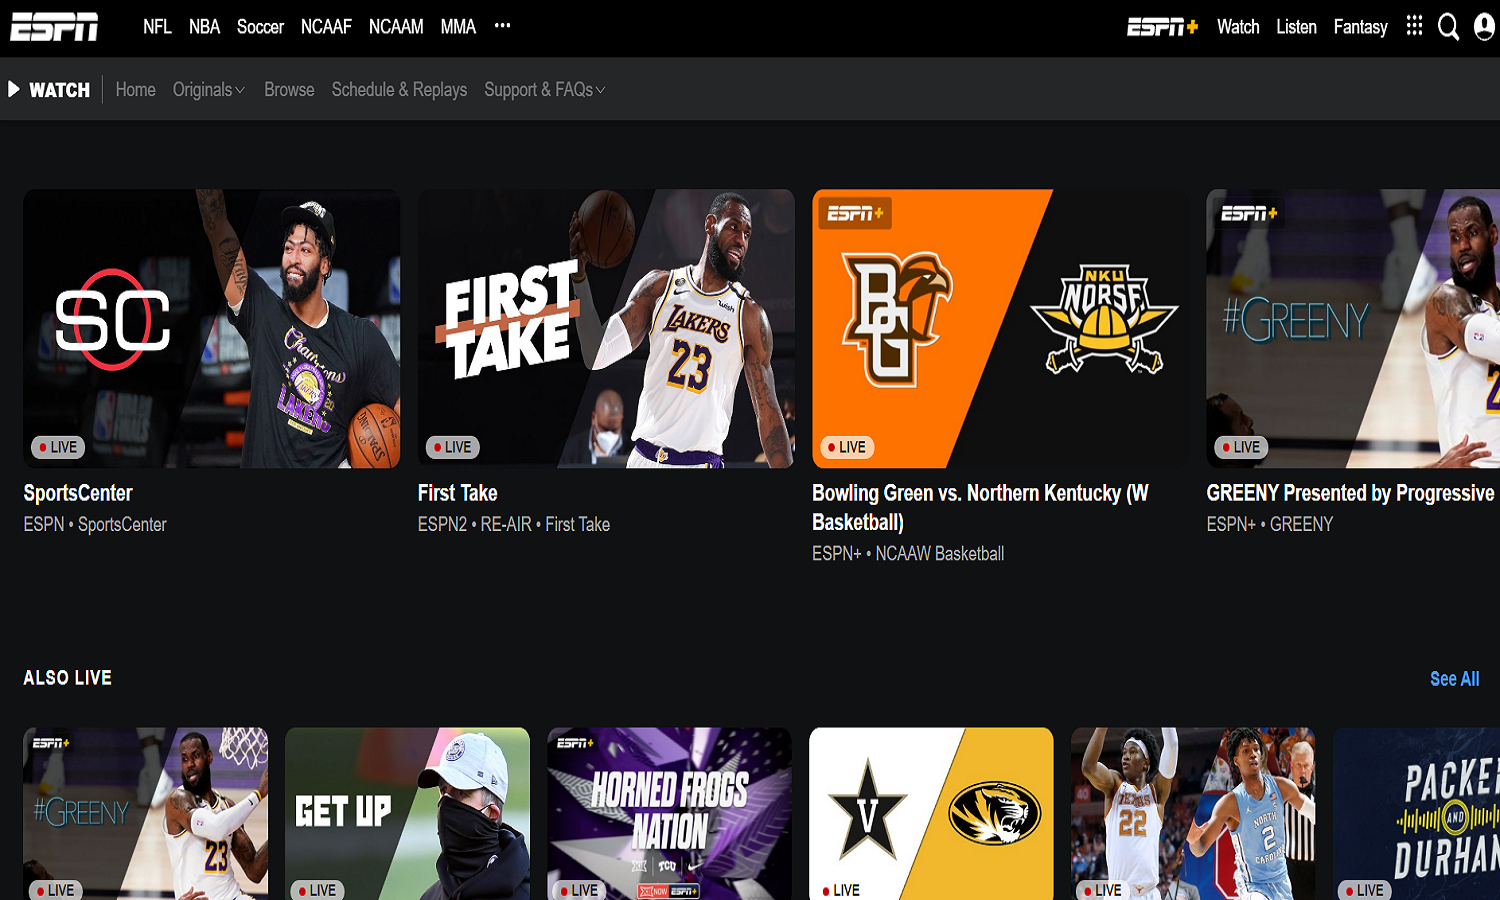 How To Activate ESPN Channel On Roku?